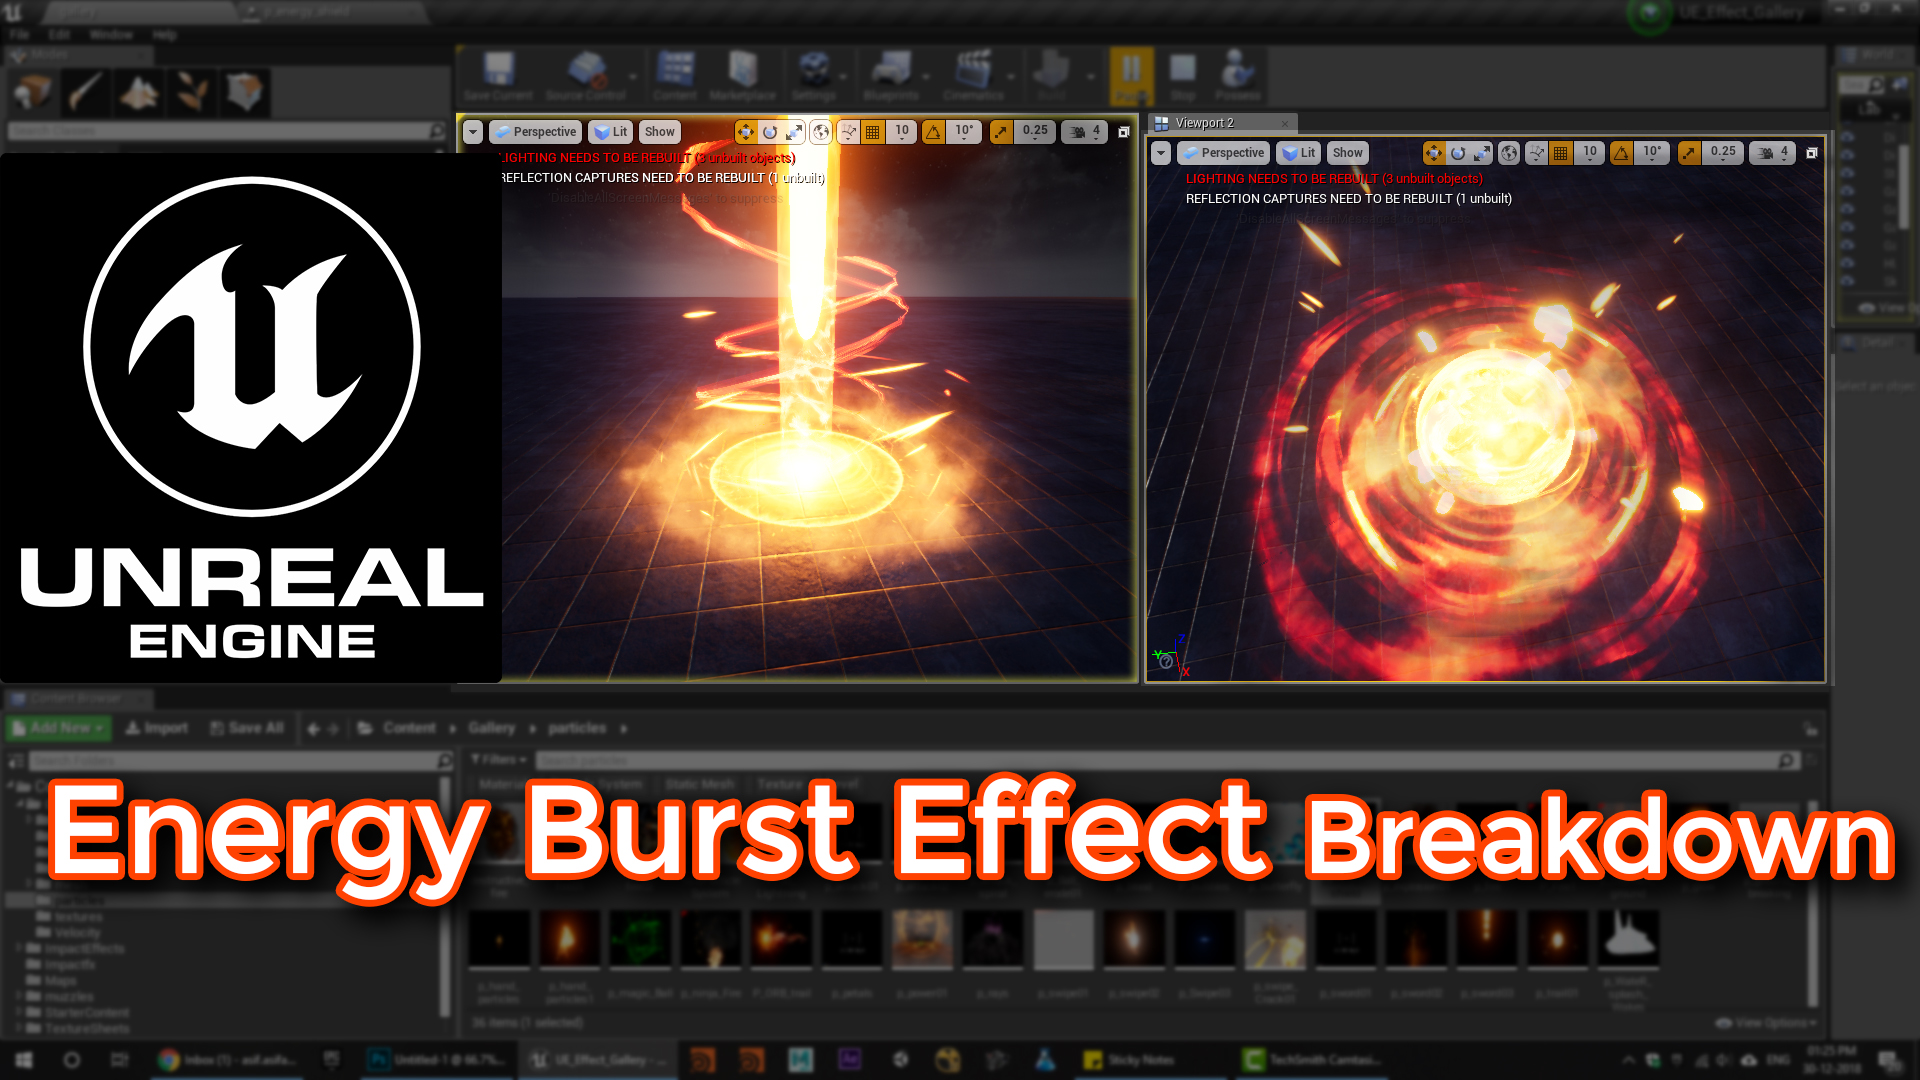 Energy burst jpg1920x1080 961 kb